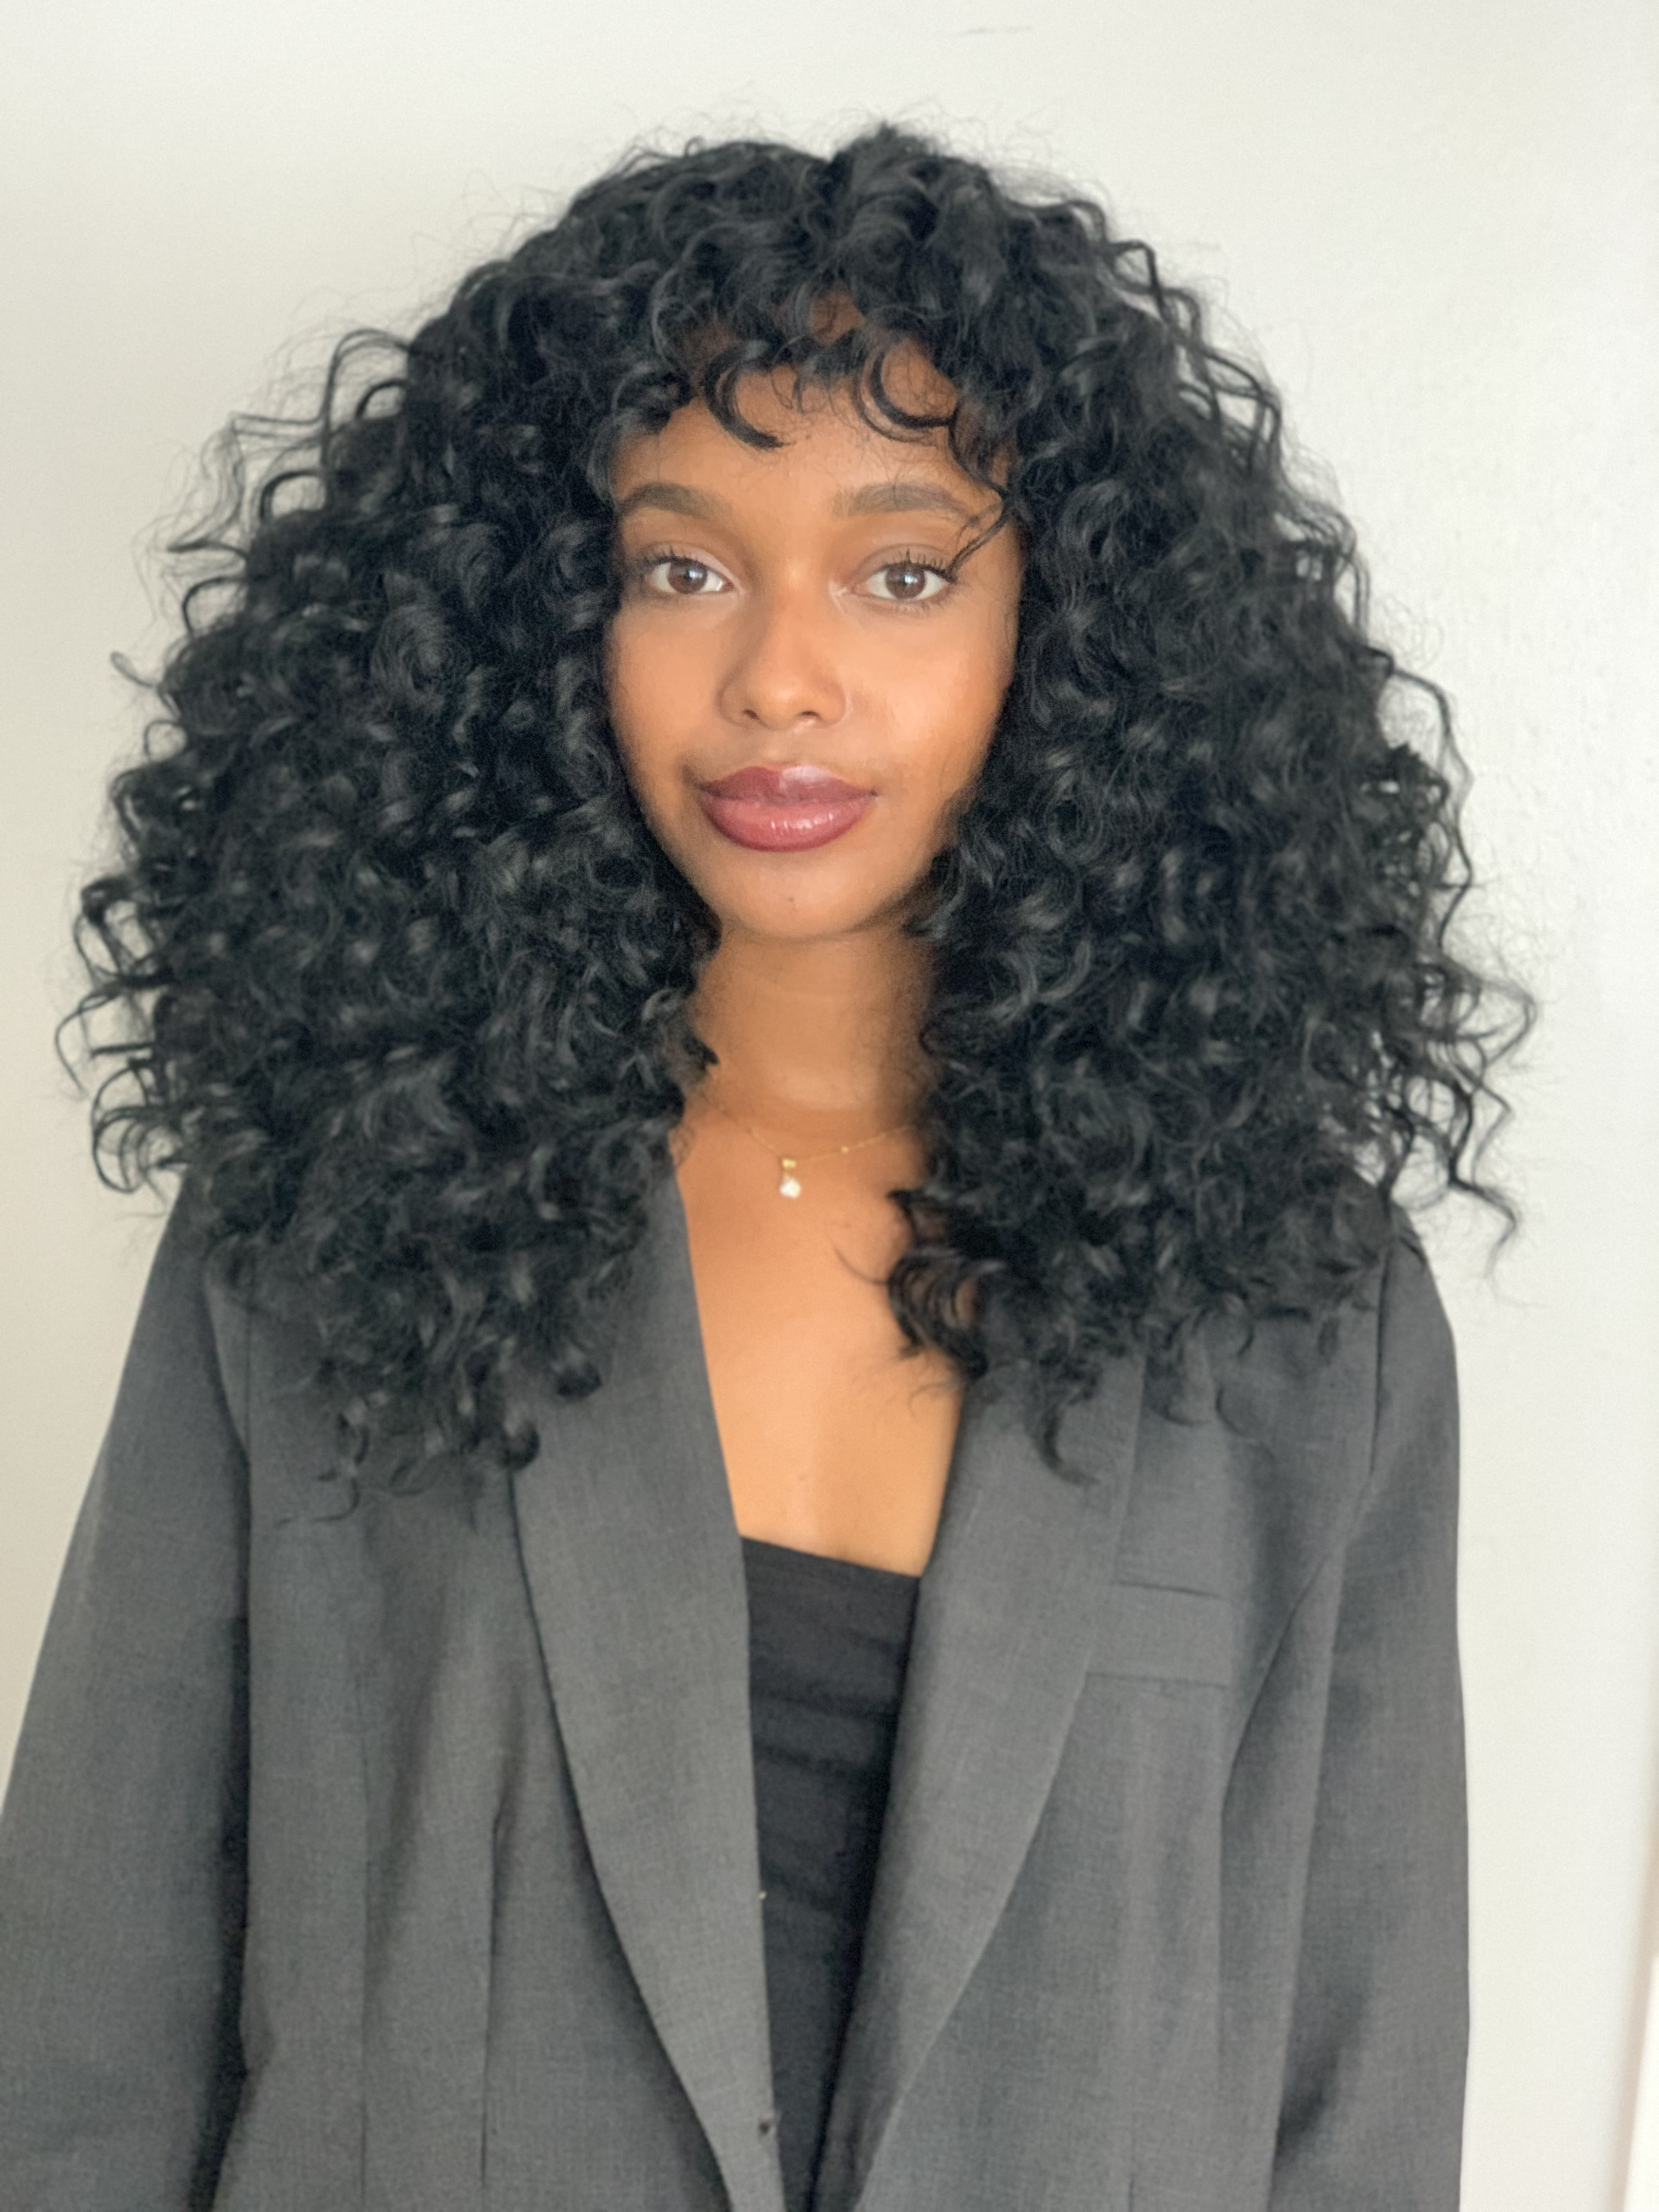 Shoulder Length Knotless Curly Crochet Braids With Bangs